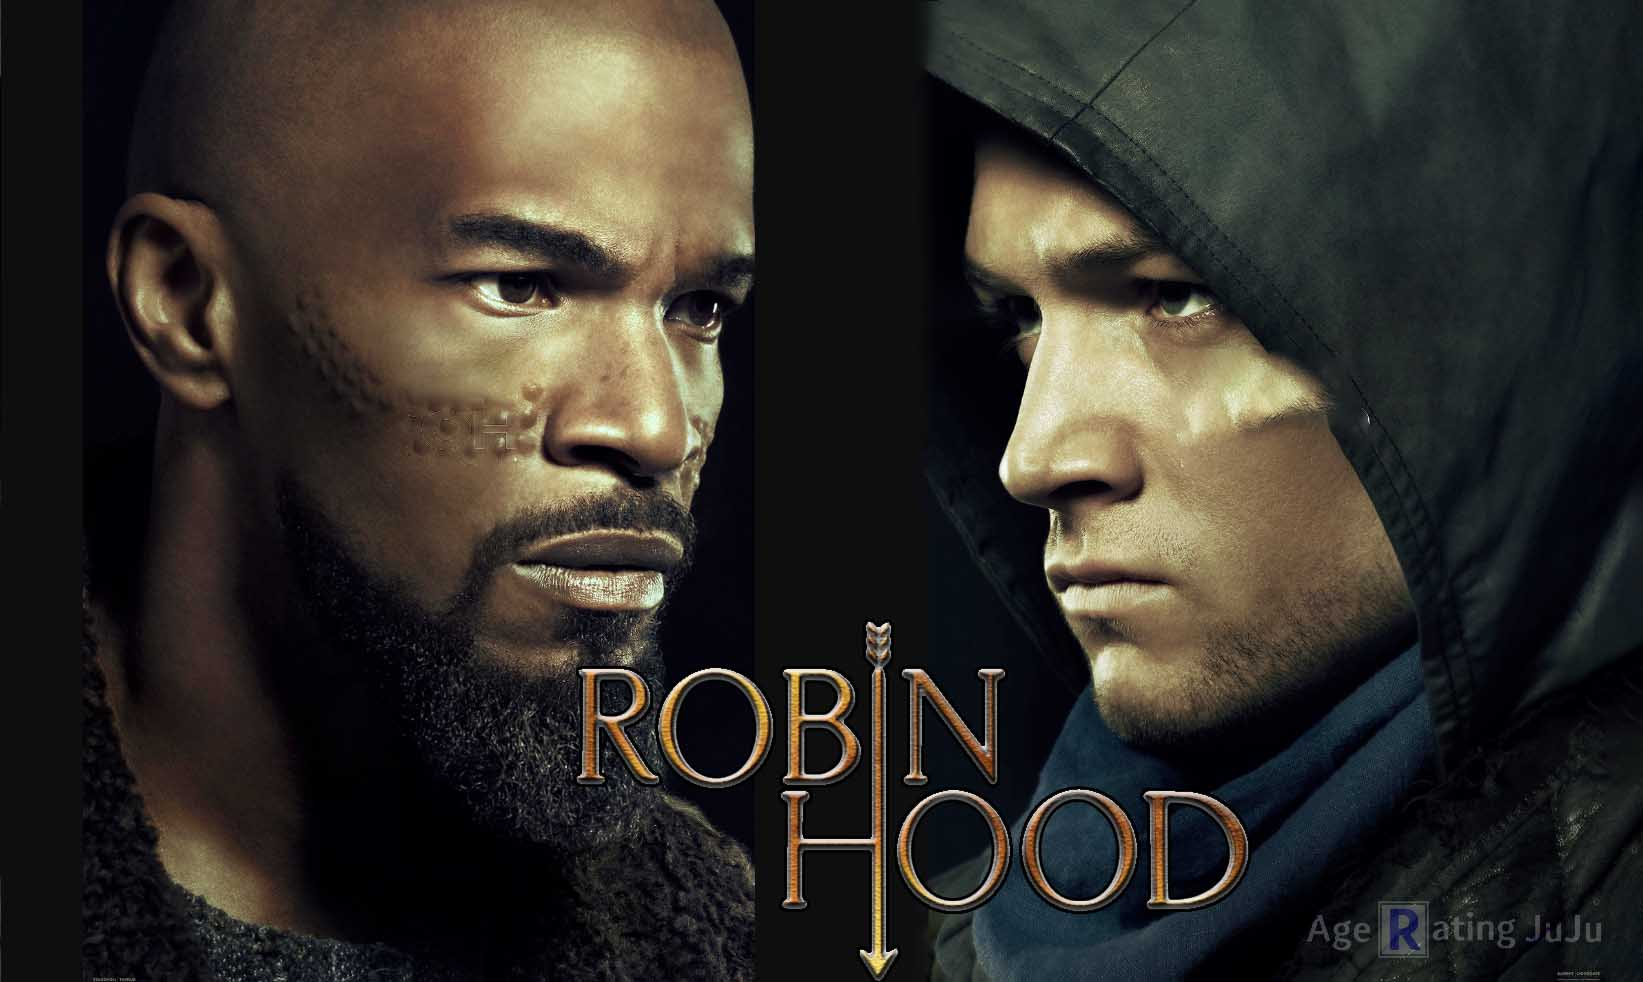 2018 Movie Posters: Robin Hood Movie 2018 Age